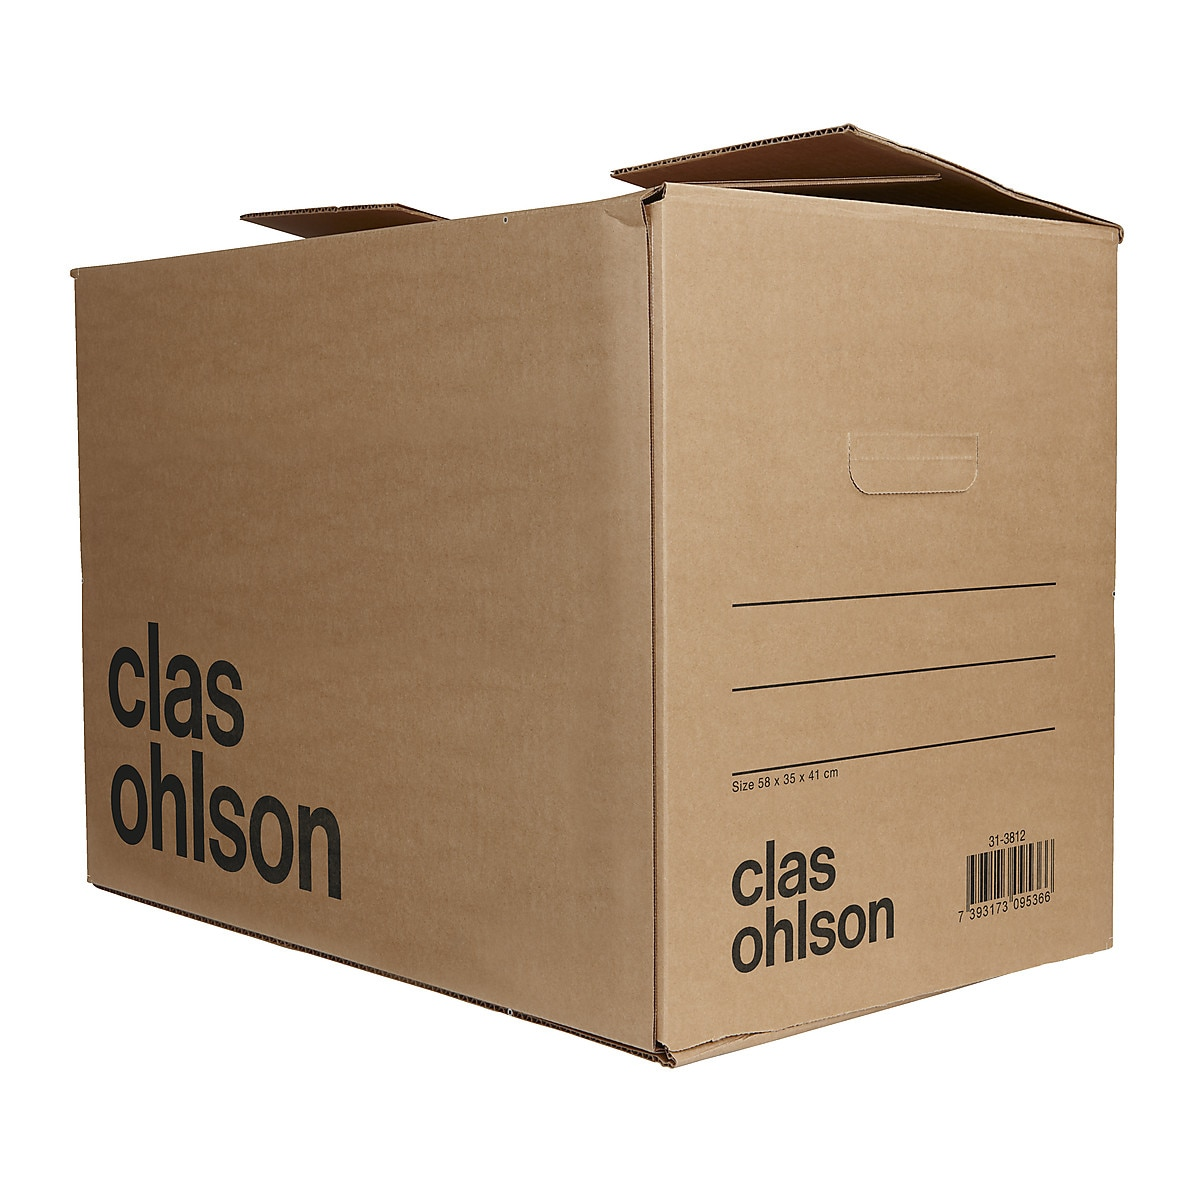 Pack of 5 Removal Boxes, 58 x 33 x 42 cm